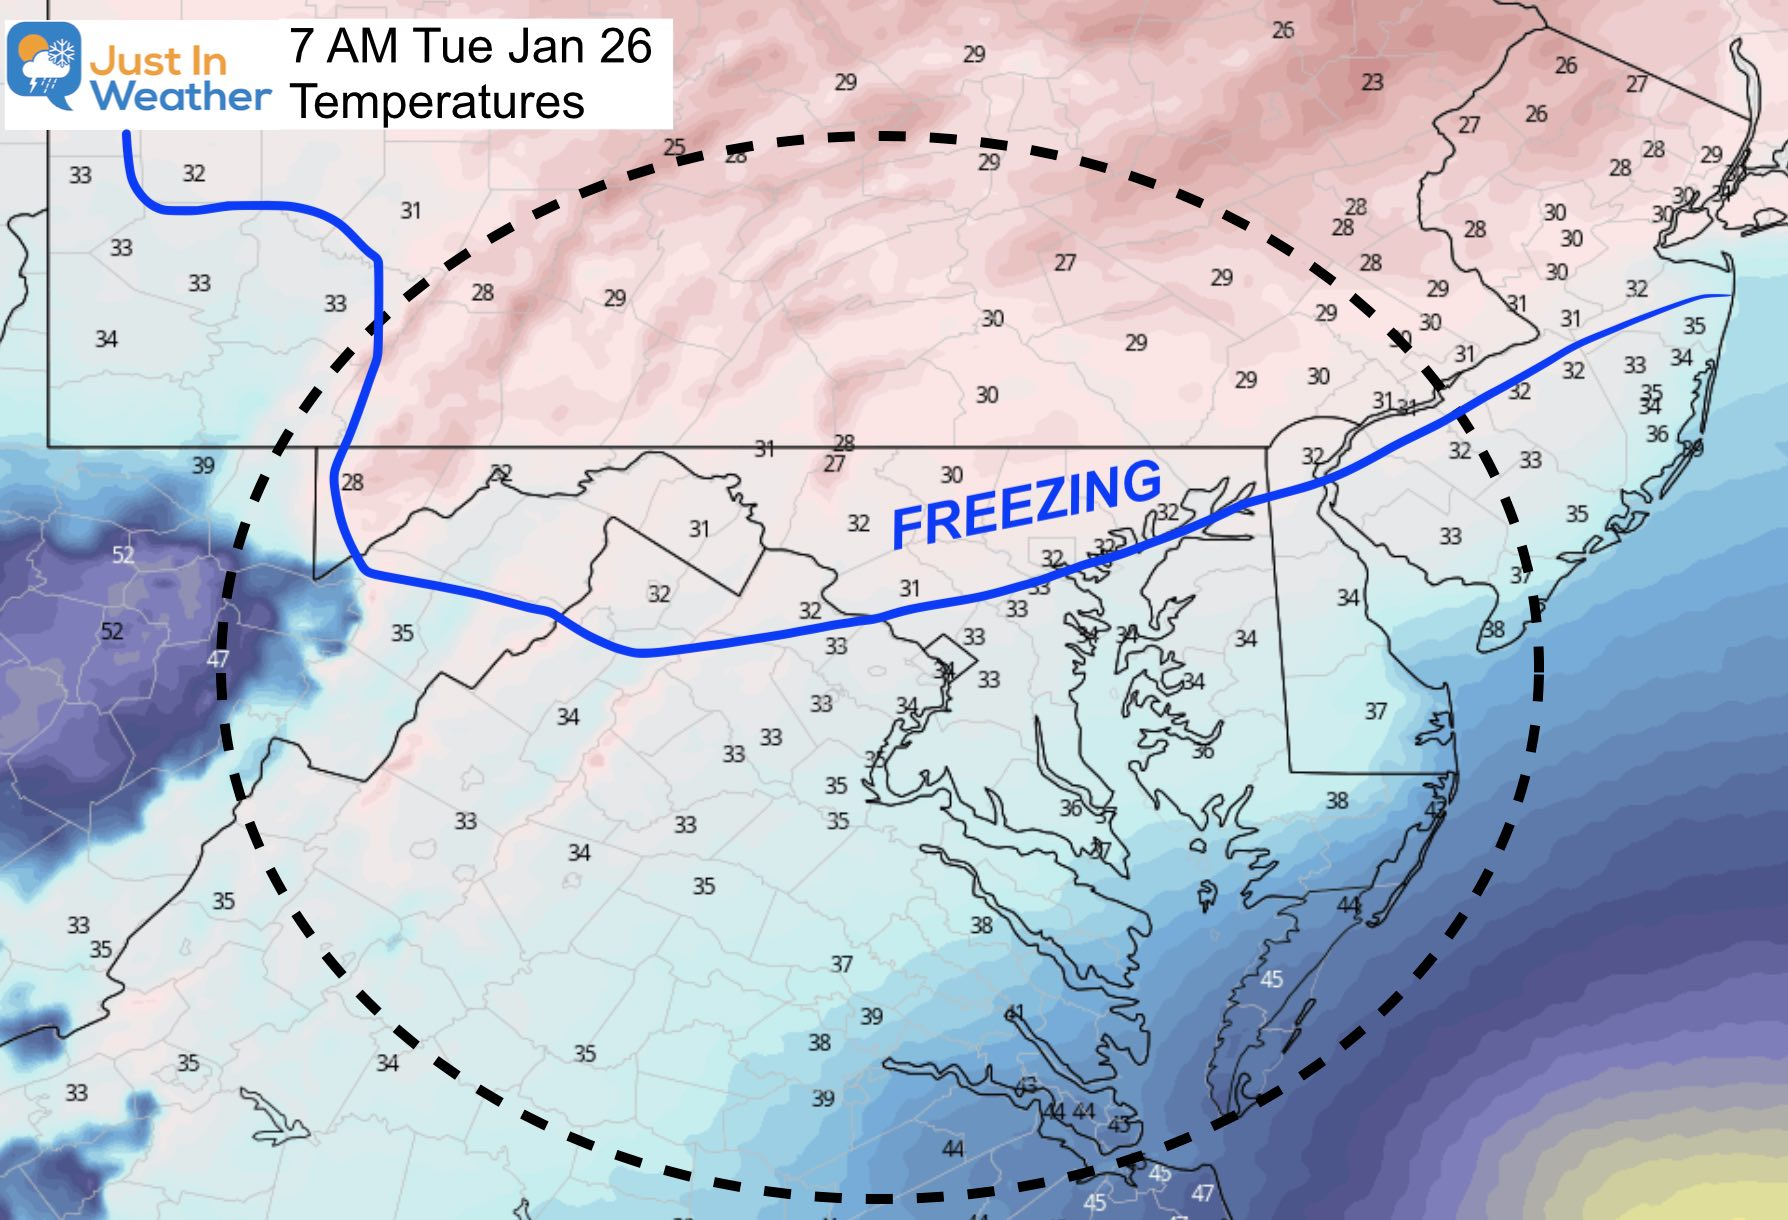 January 25 Temperatures Tuesday 7 AM